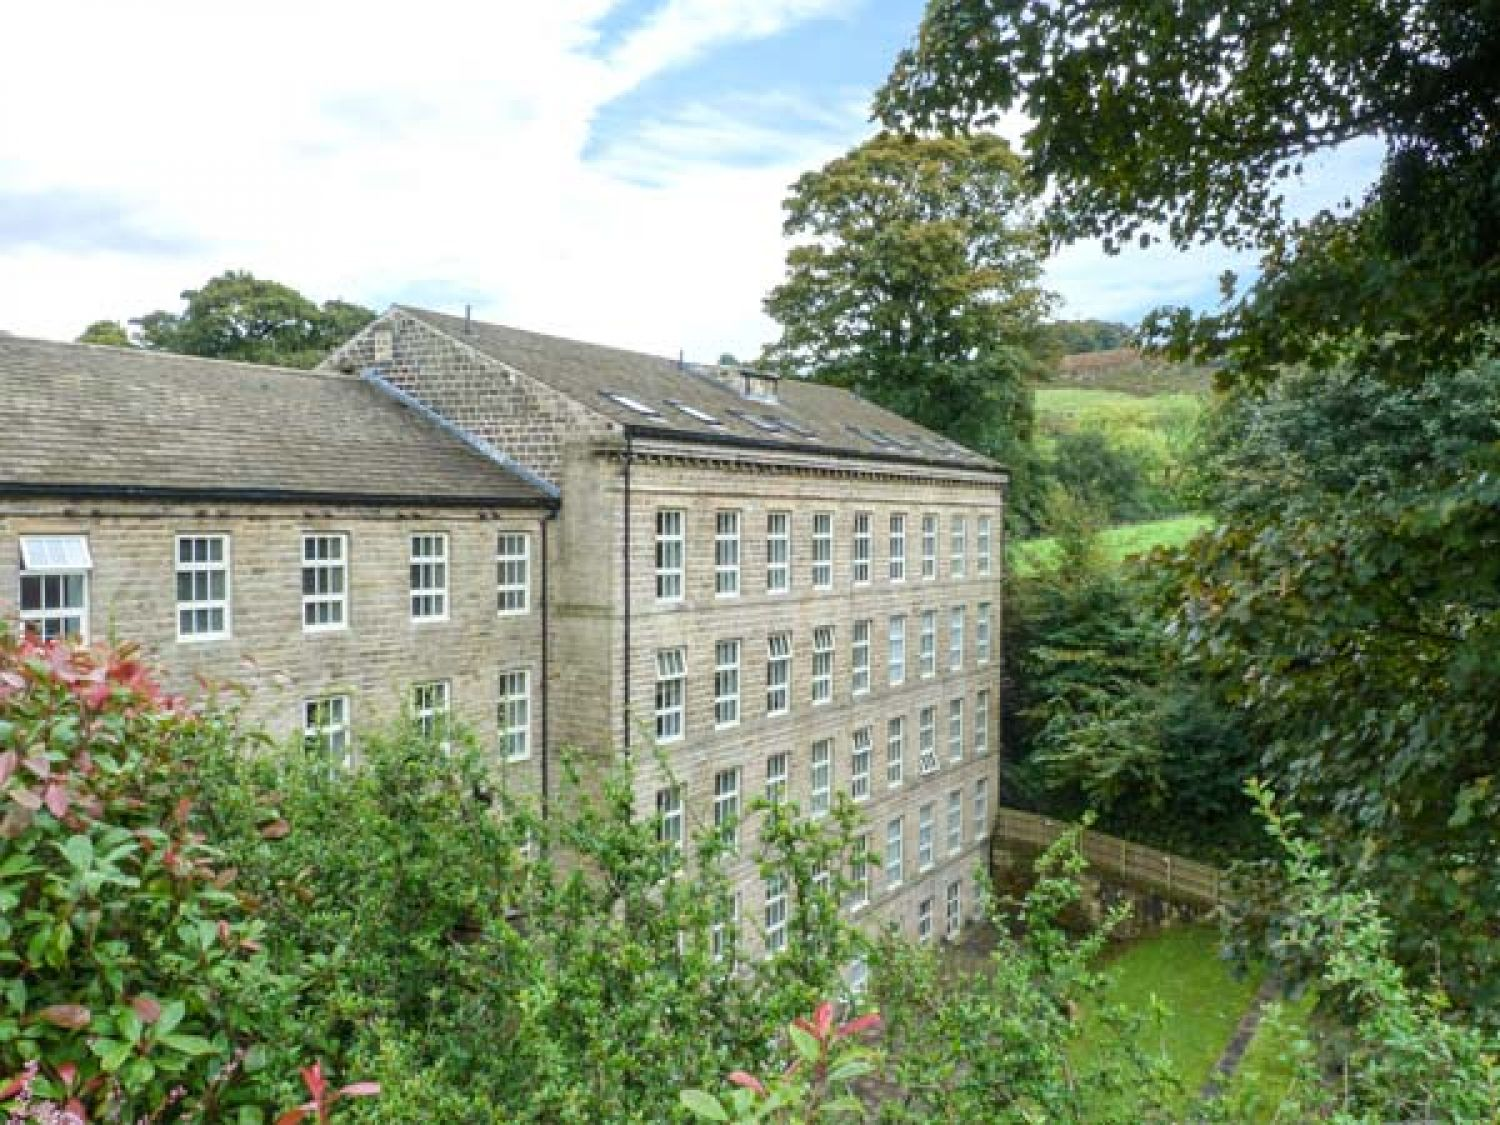 34 Woodlands Mill - Yorkshire Dales - 926152 - photo 1